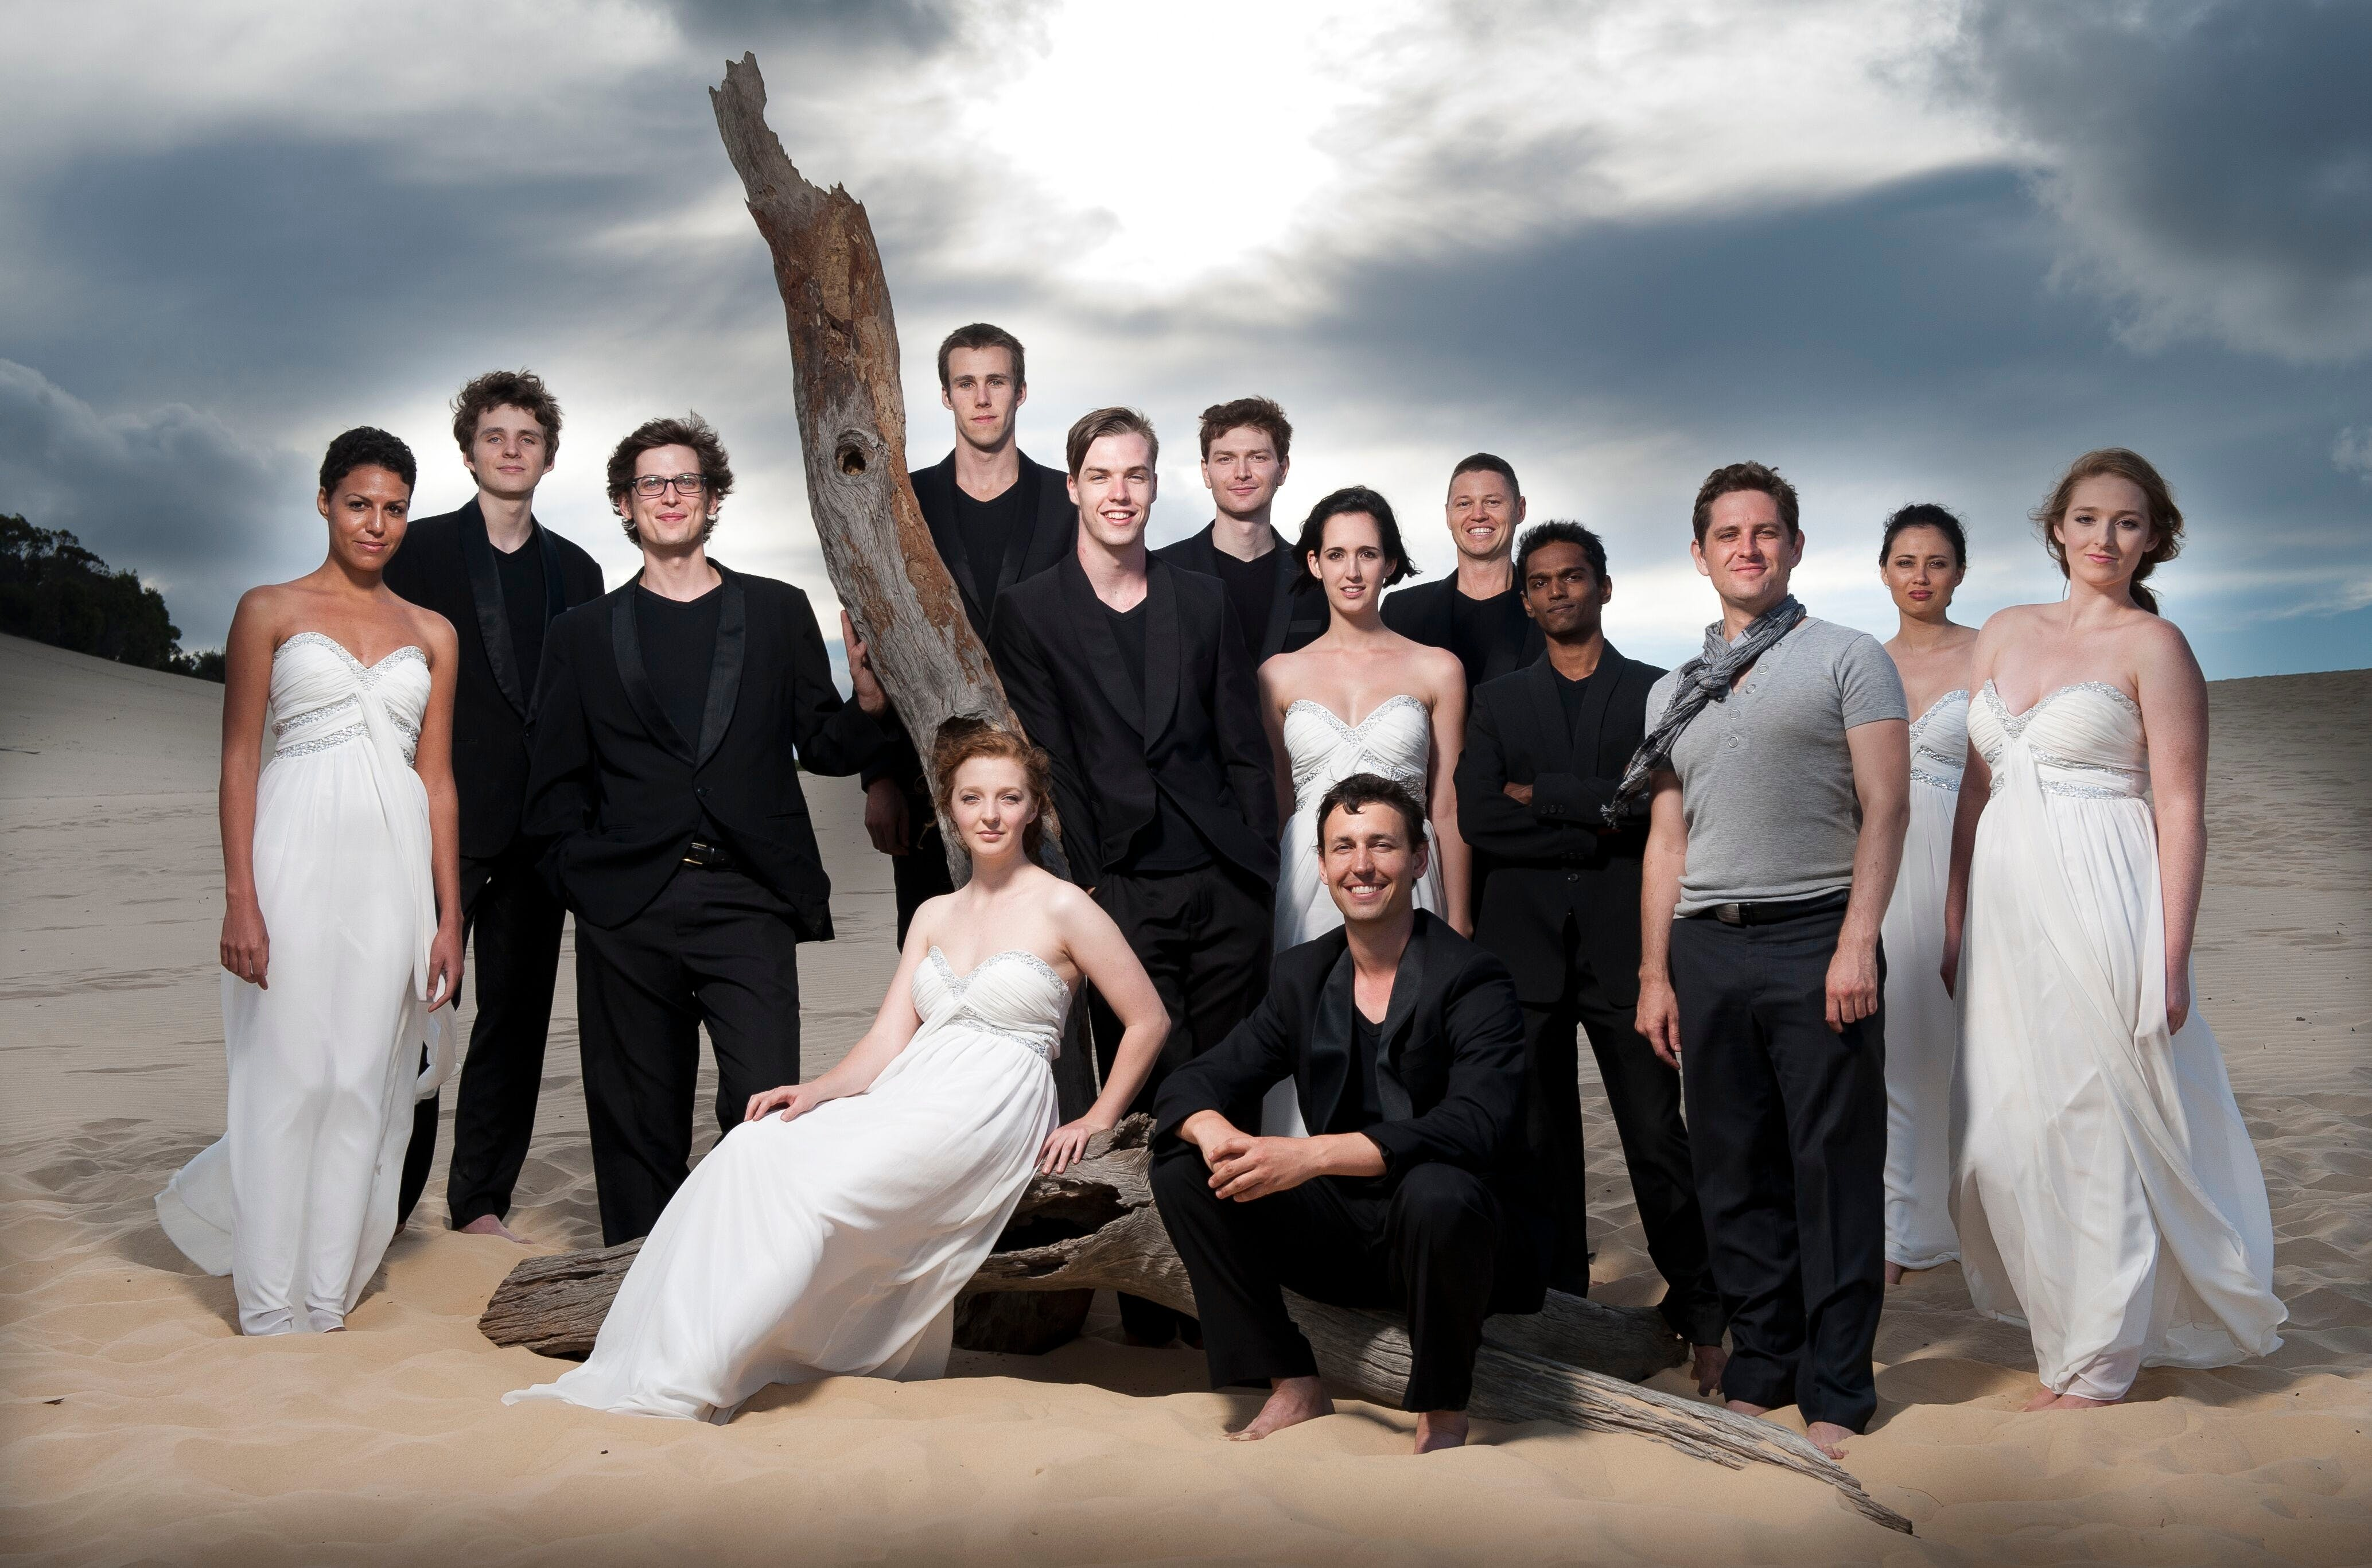 The Australian Voices in Concert - New South Wales Tourism